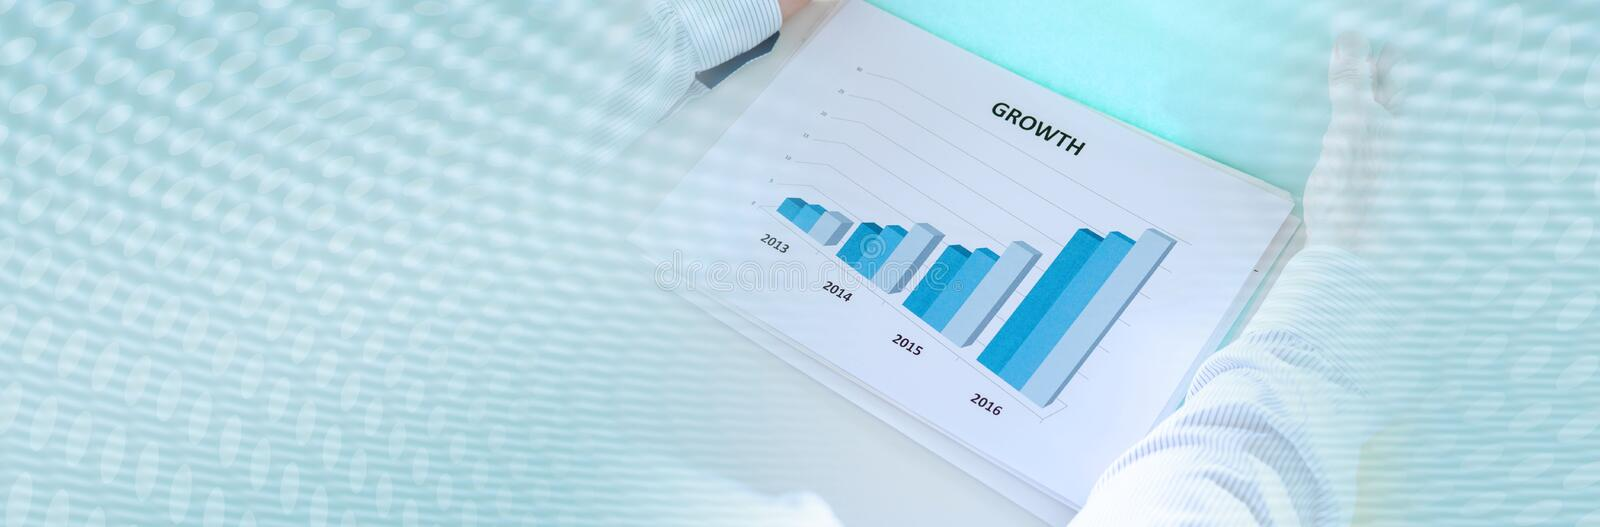 Businessman analyzing a graph. panoramic banner. Businessman analyzing a graph showing growth. panoramic banner stock photos